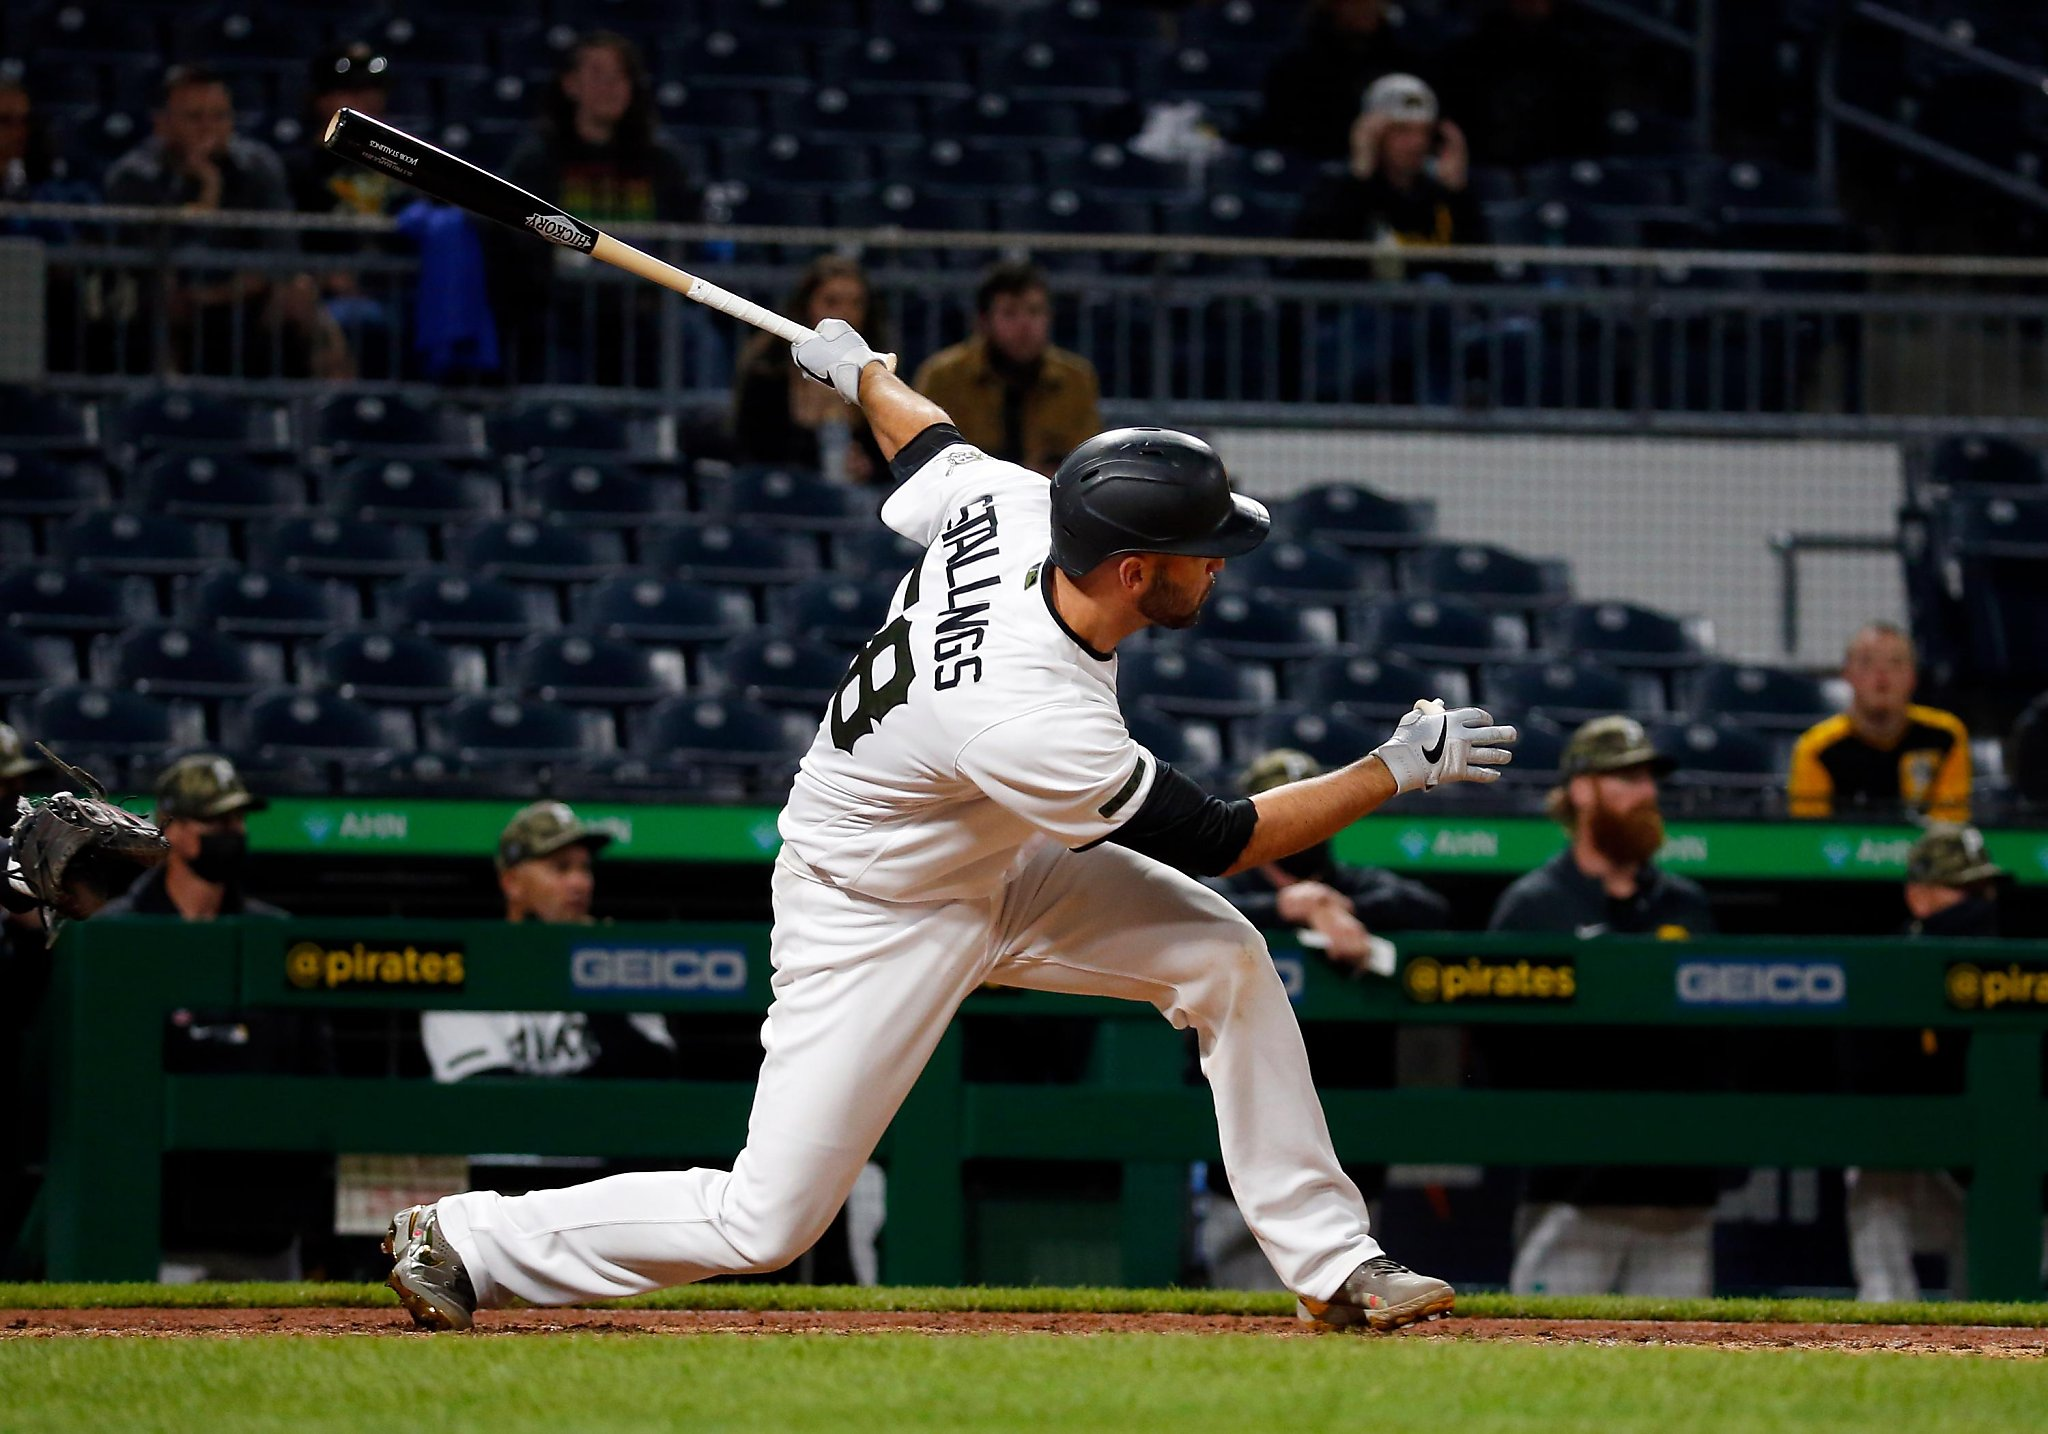 Giants waste 4-run lead, lose to Pirates on HR in 9th